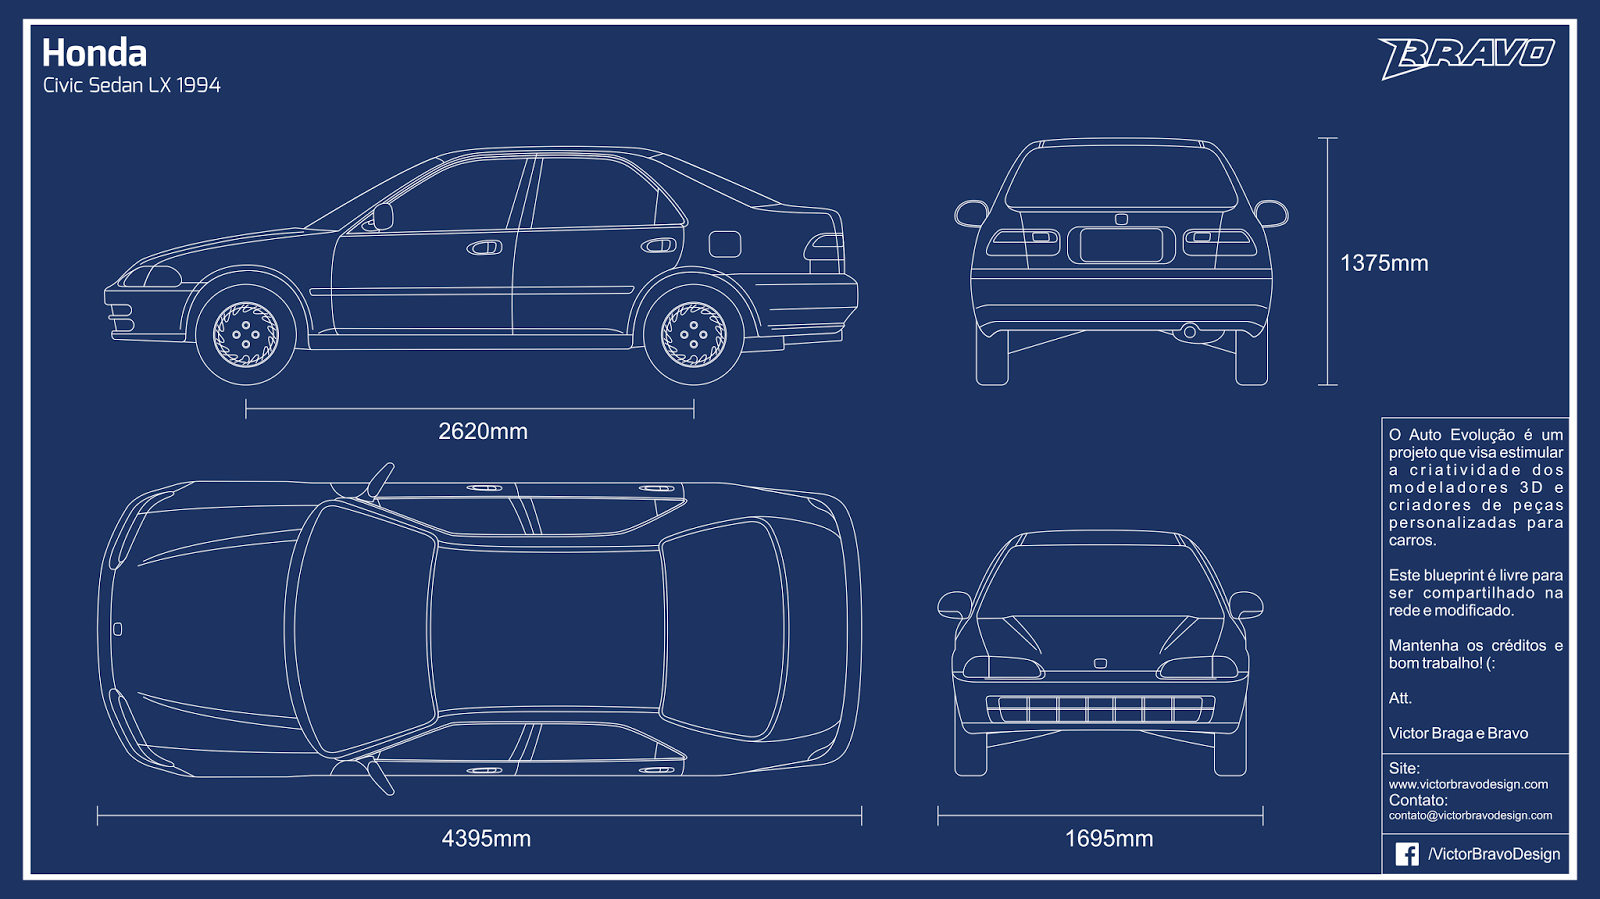 Imagem do blueprint do Honda Civic Sedan LX 1994